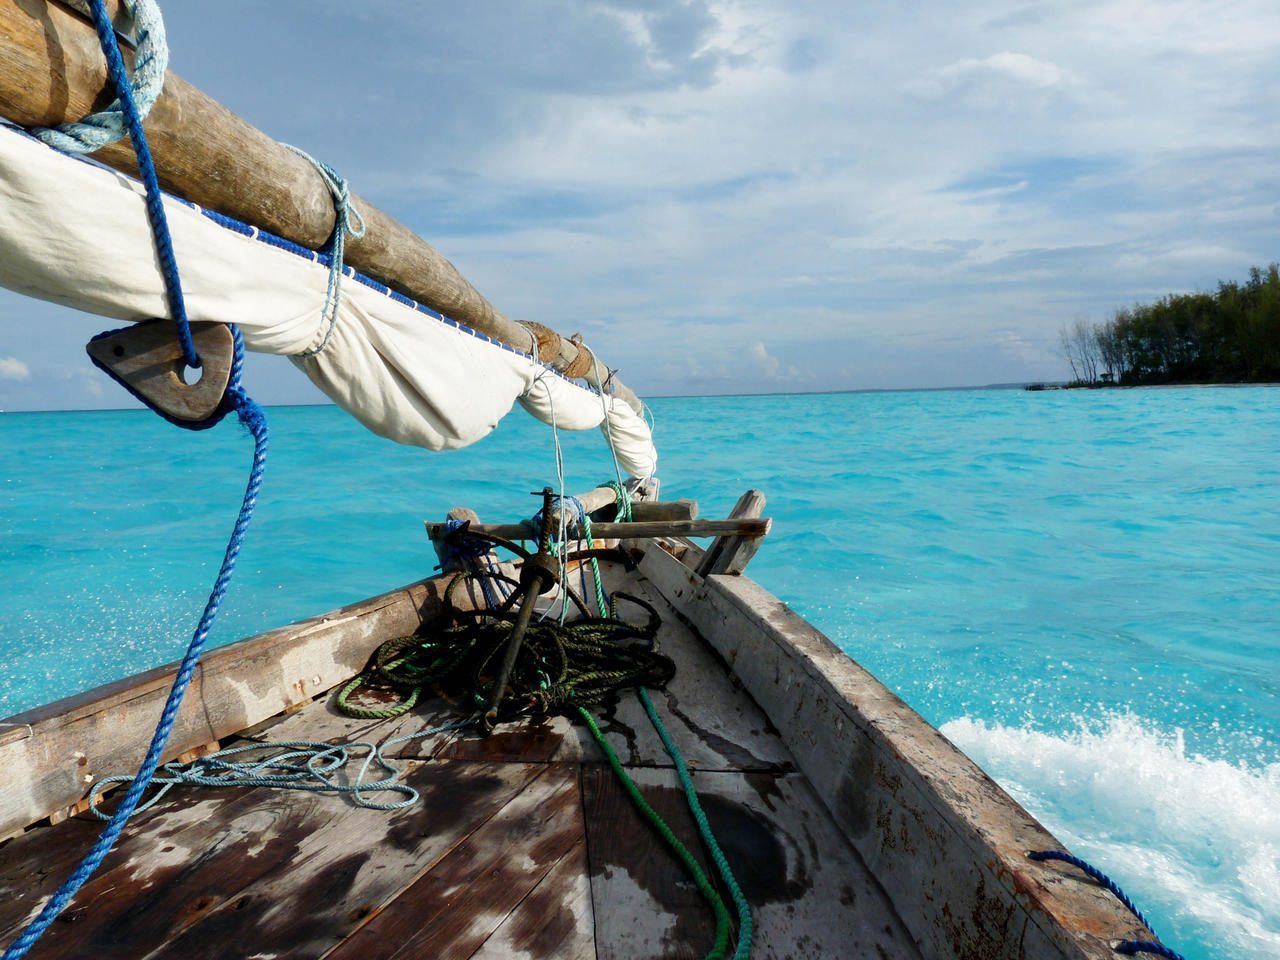 bow of Zanzibar dhow boat with tip of mast sailing in aqua blue waters